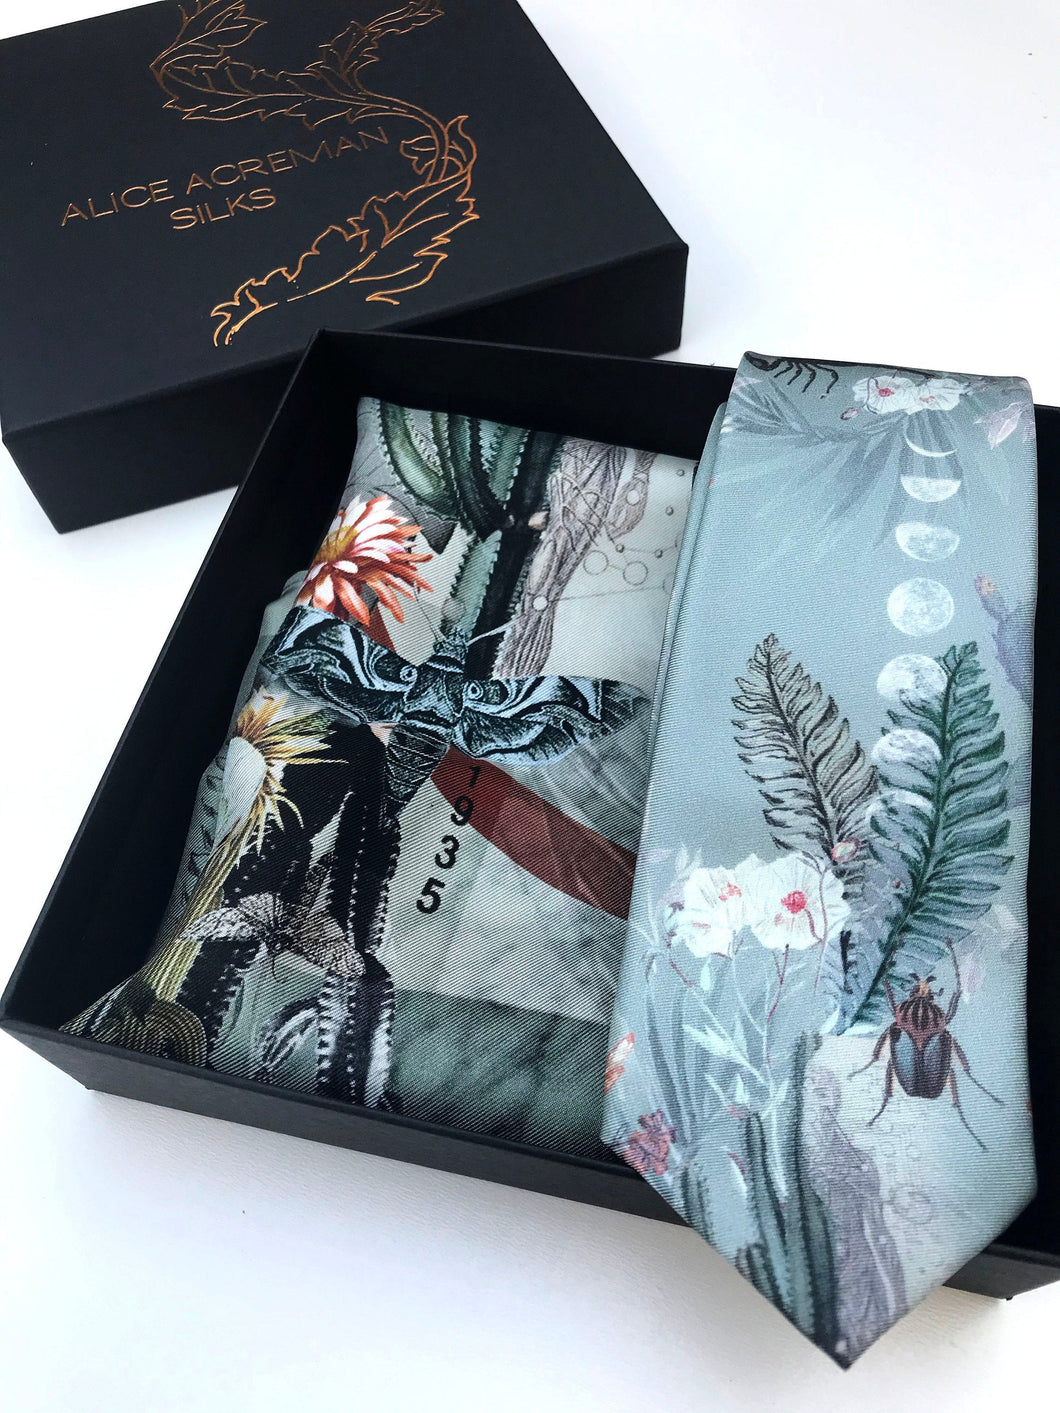 Sage Green Luxury Silk Pocket Square and tie men's Gift set 'Mirage' design inspired by Arizona Desert